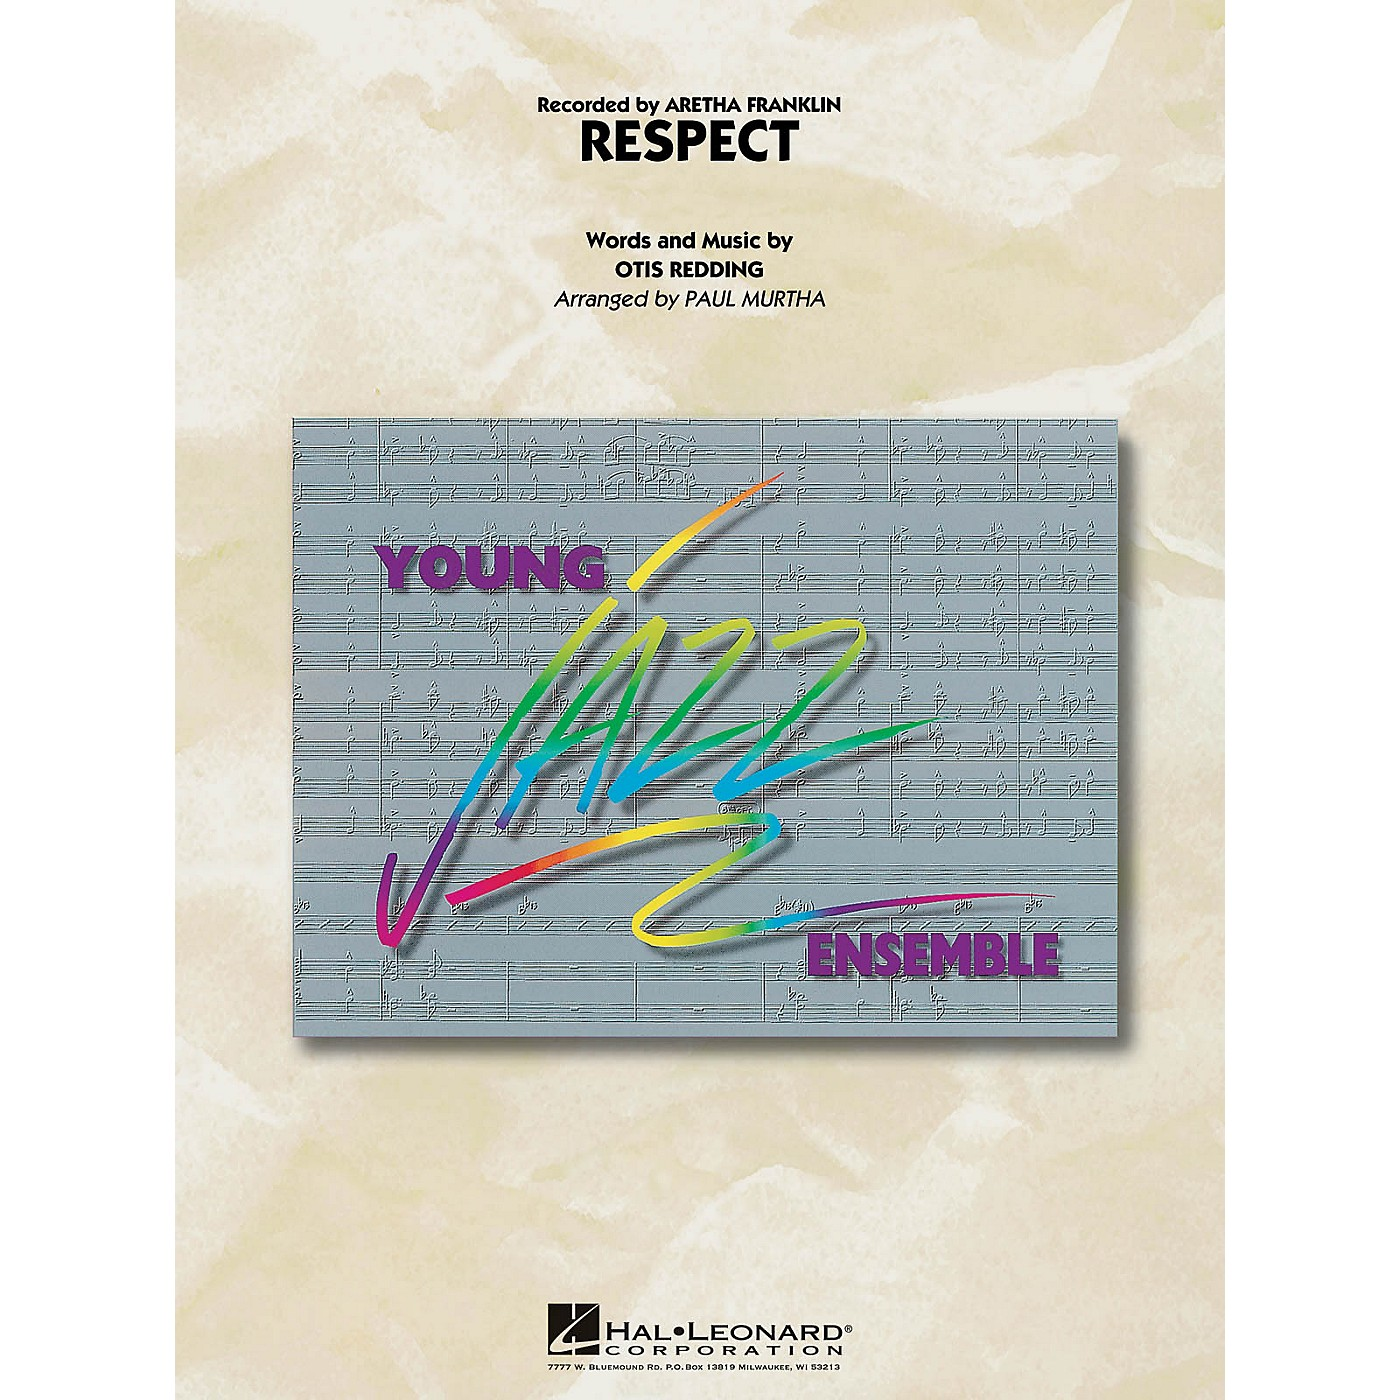 Hal Leonard Respect Jazz Band Level 3 by Aretha Franklin Arranged by Paul Murtha thumbnail